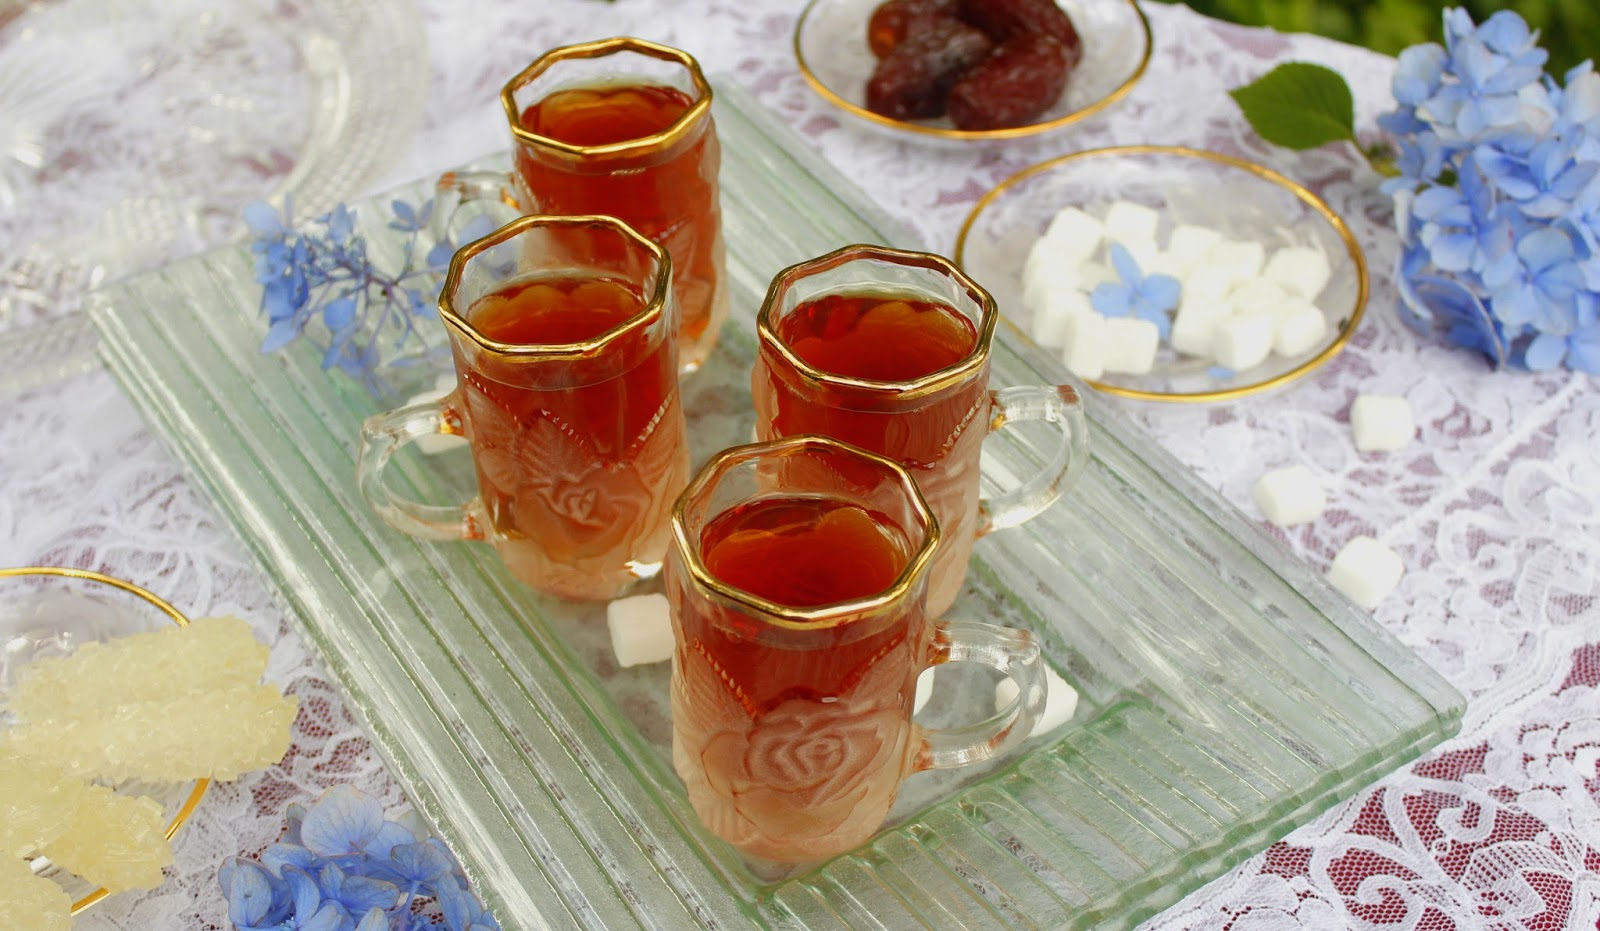 Turmeric & Saffron: How to Brew the Perfect Persian Cup of